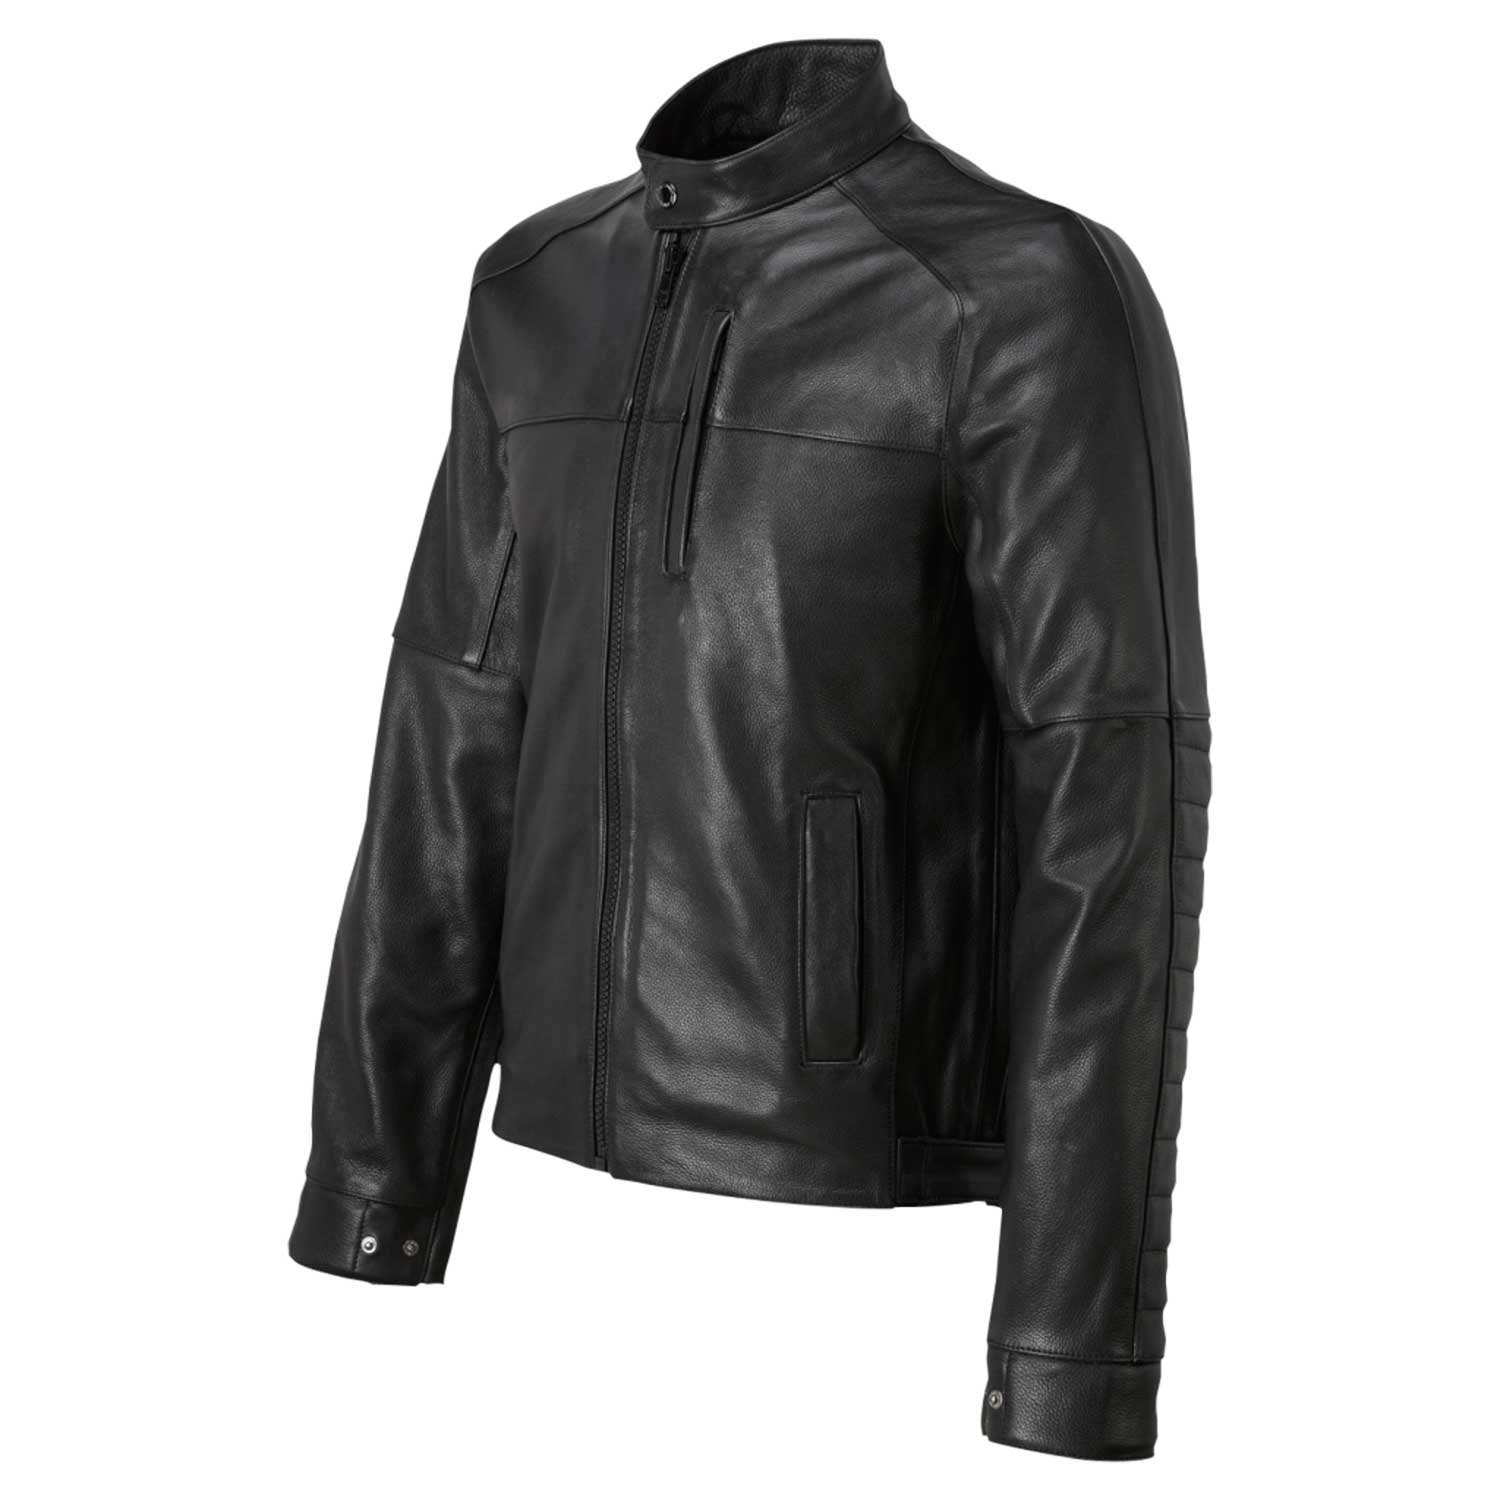 mens_leather_2-1024x1024